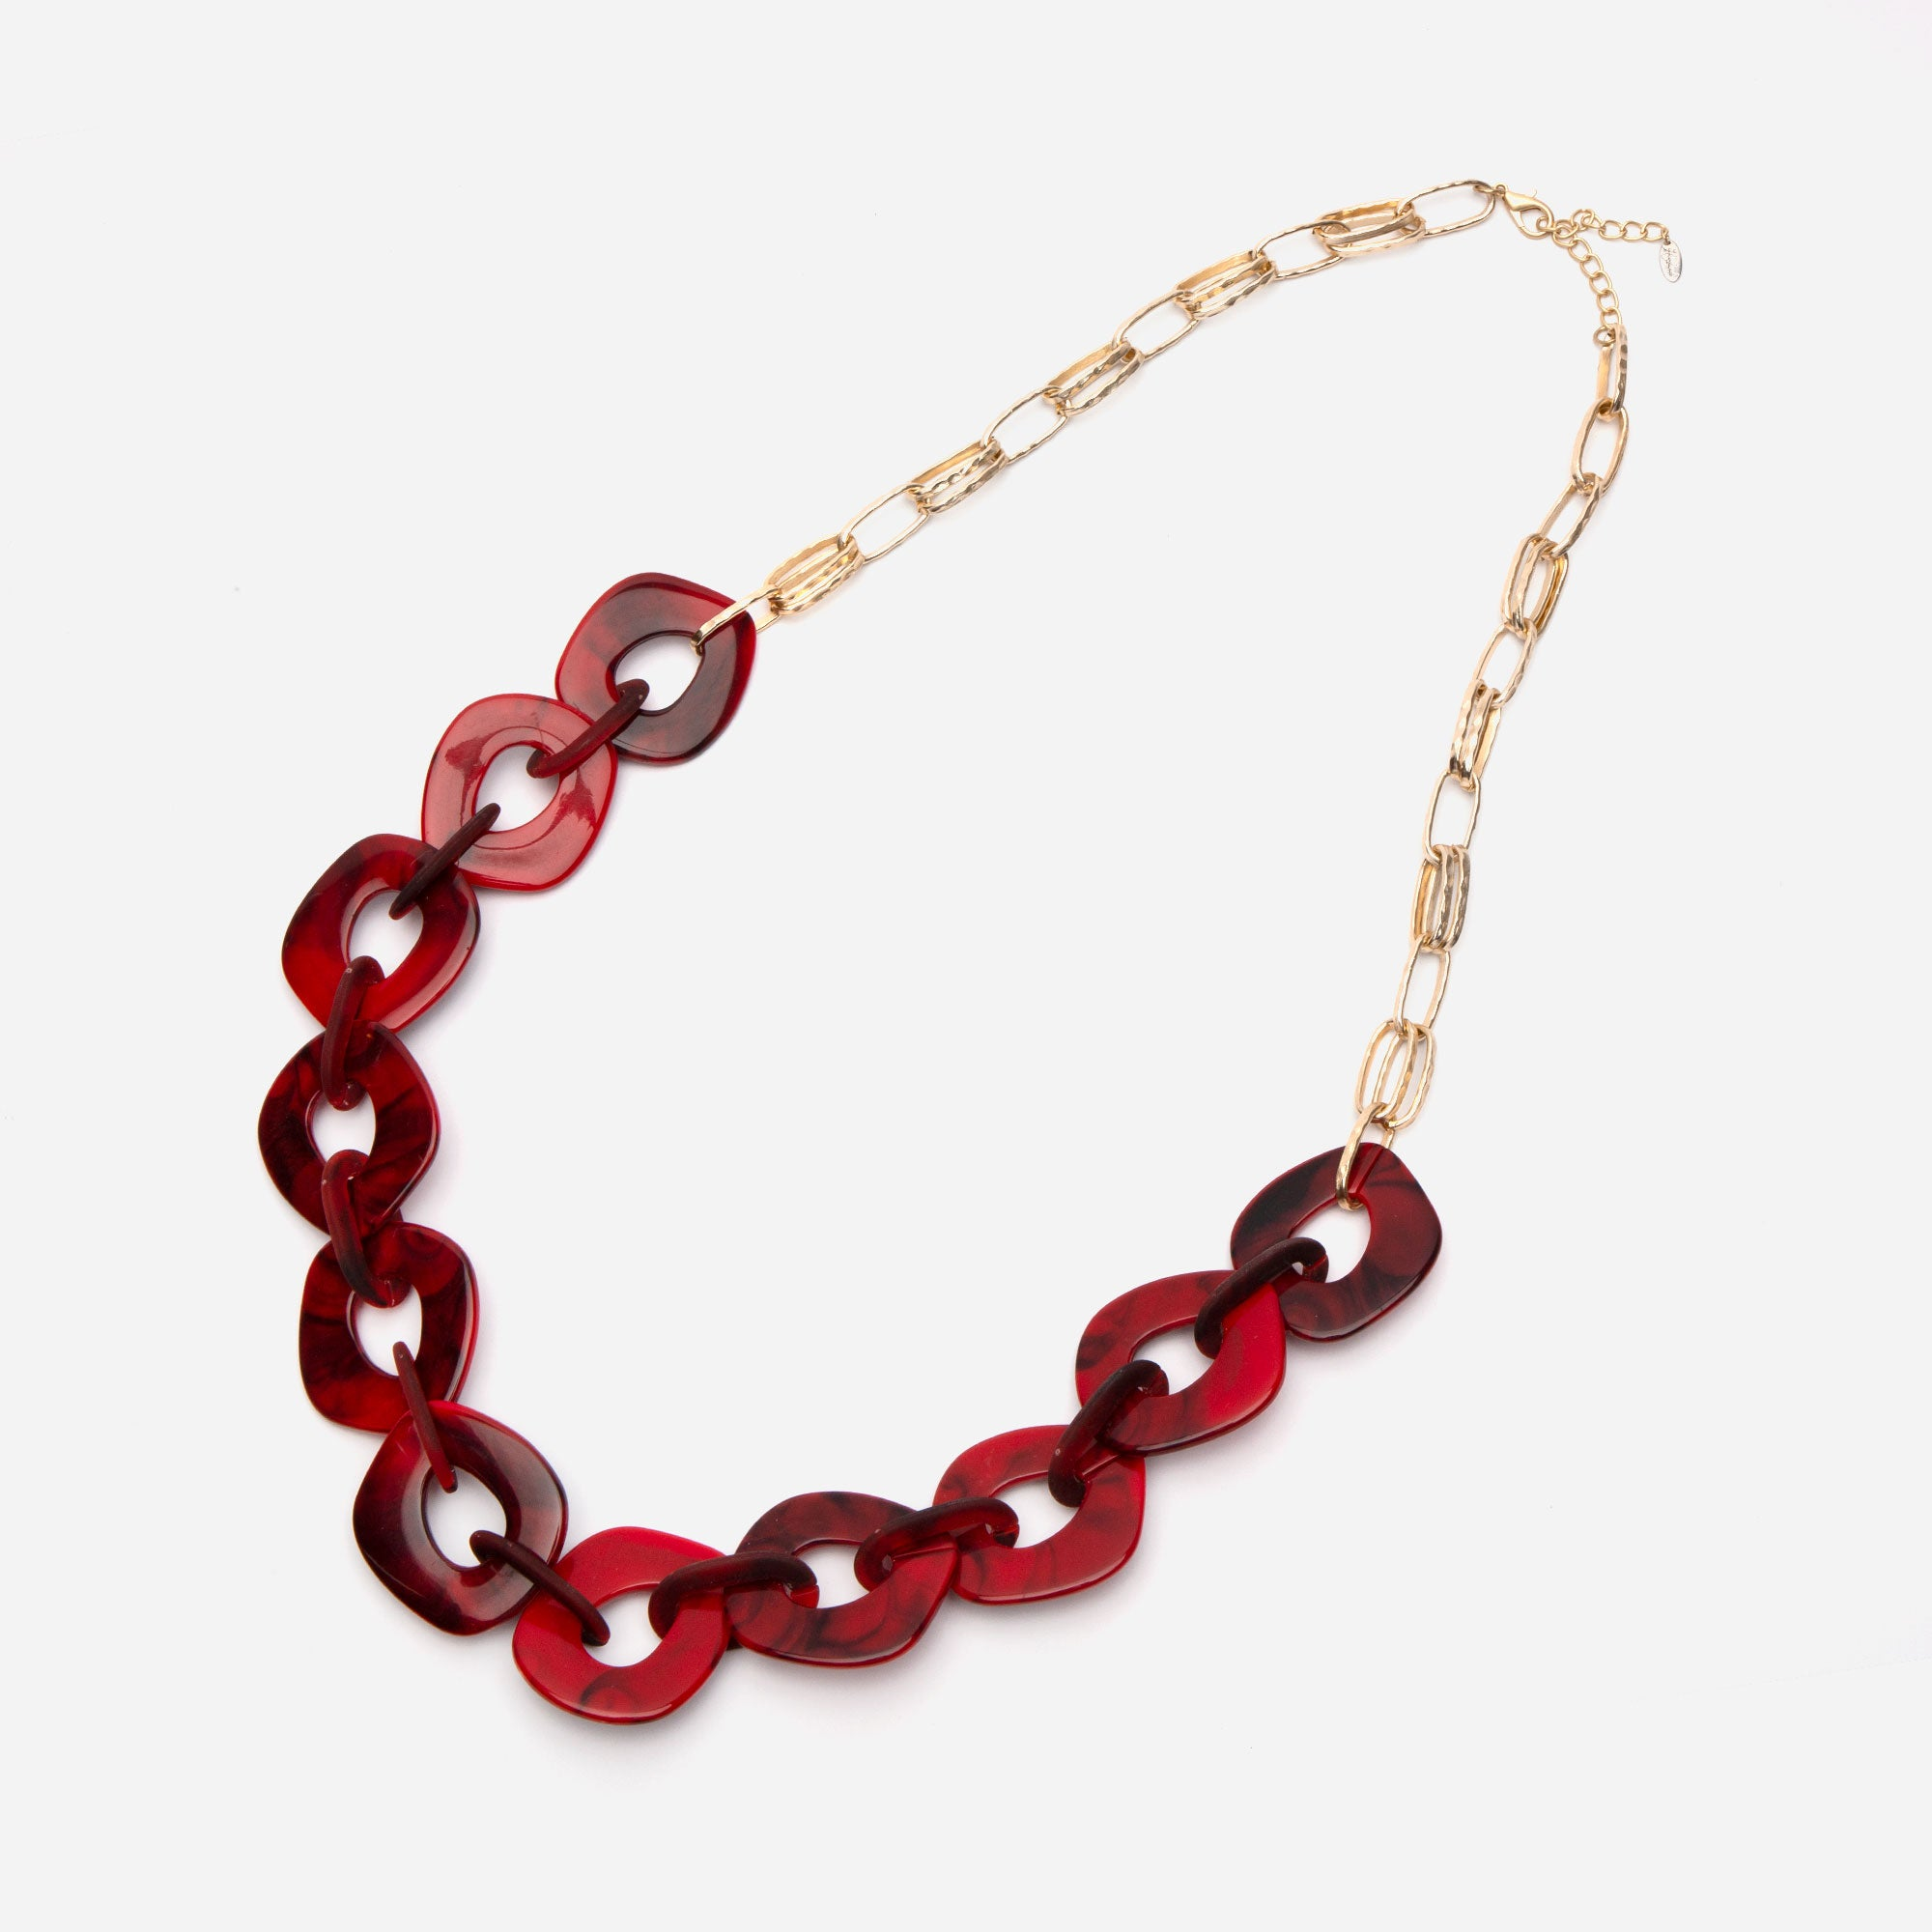 Lava Link Necklace - Frances Valentine